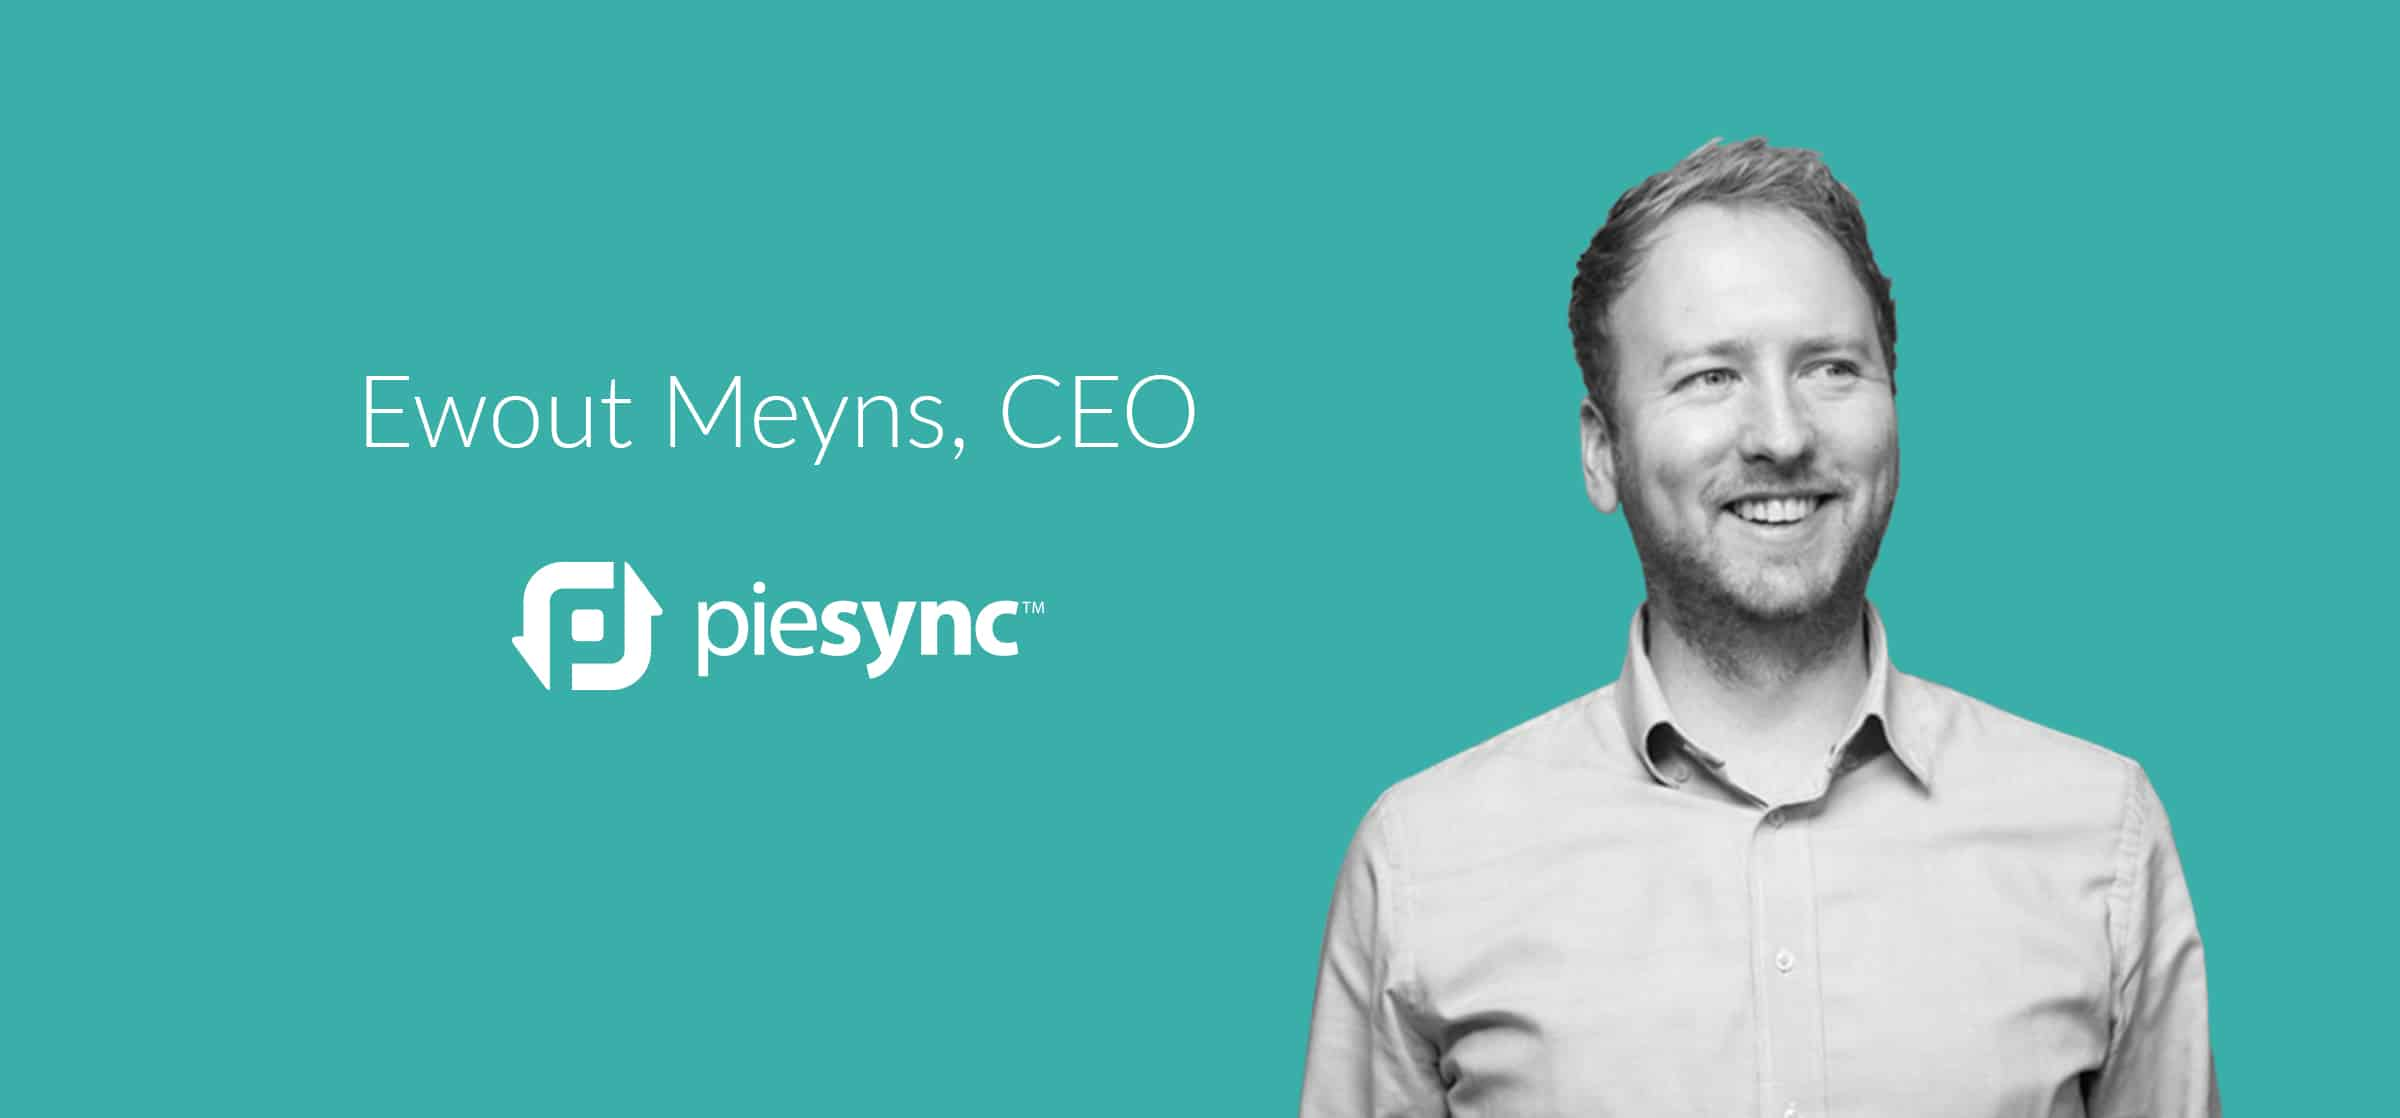 PieSync CEO Ewout Meyns on the future of integration